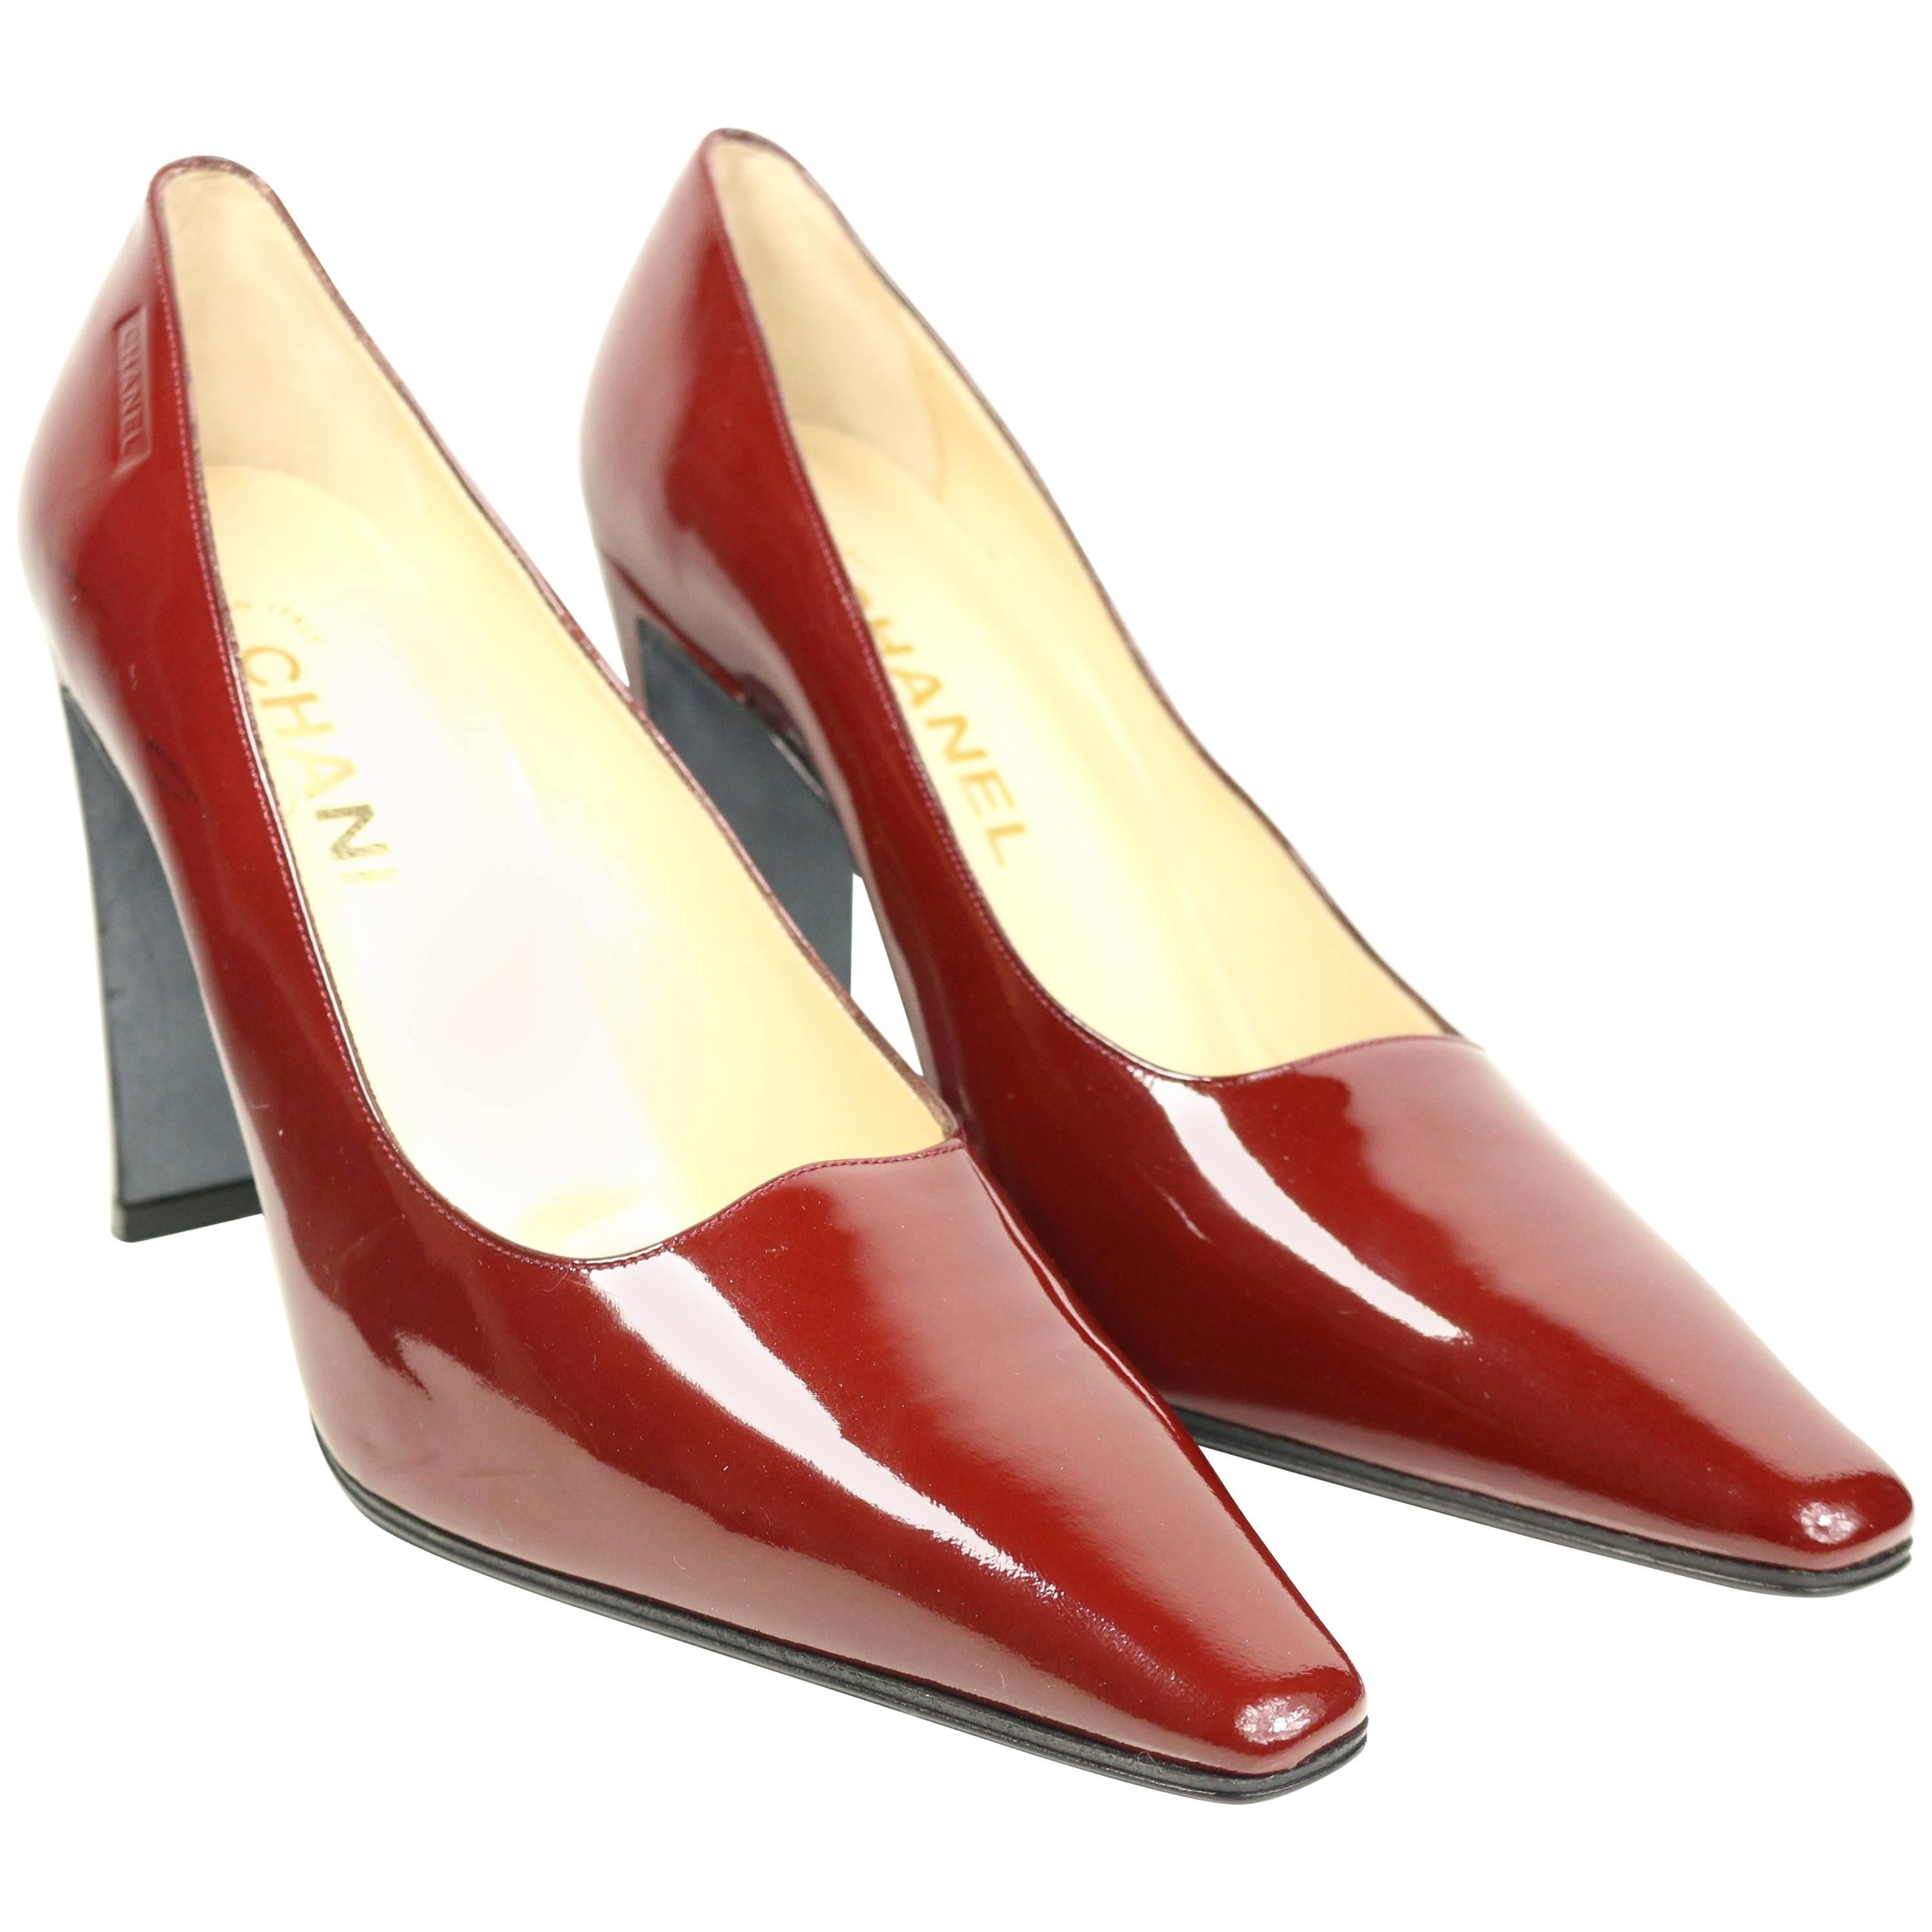 1378d804887 Chanel Burgundy Patent Leather Heels Pumps. For Sale at 1stdibs